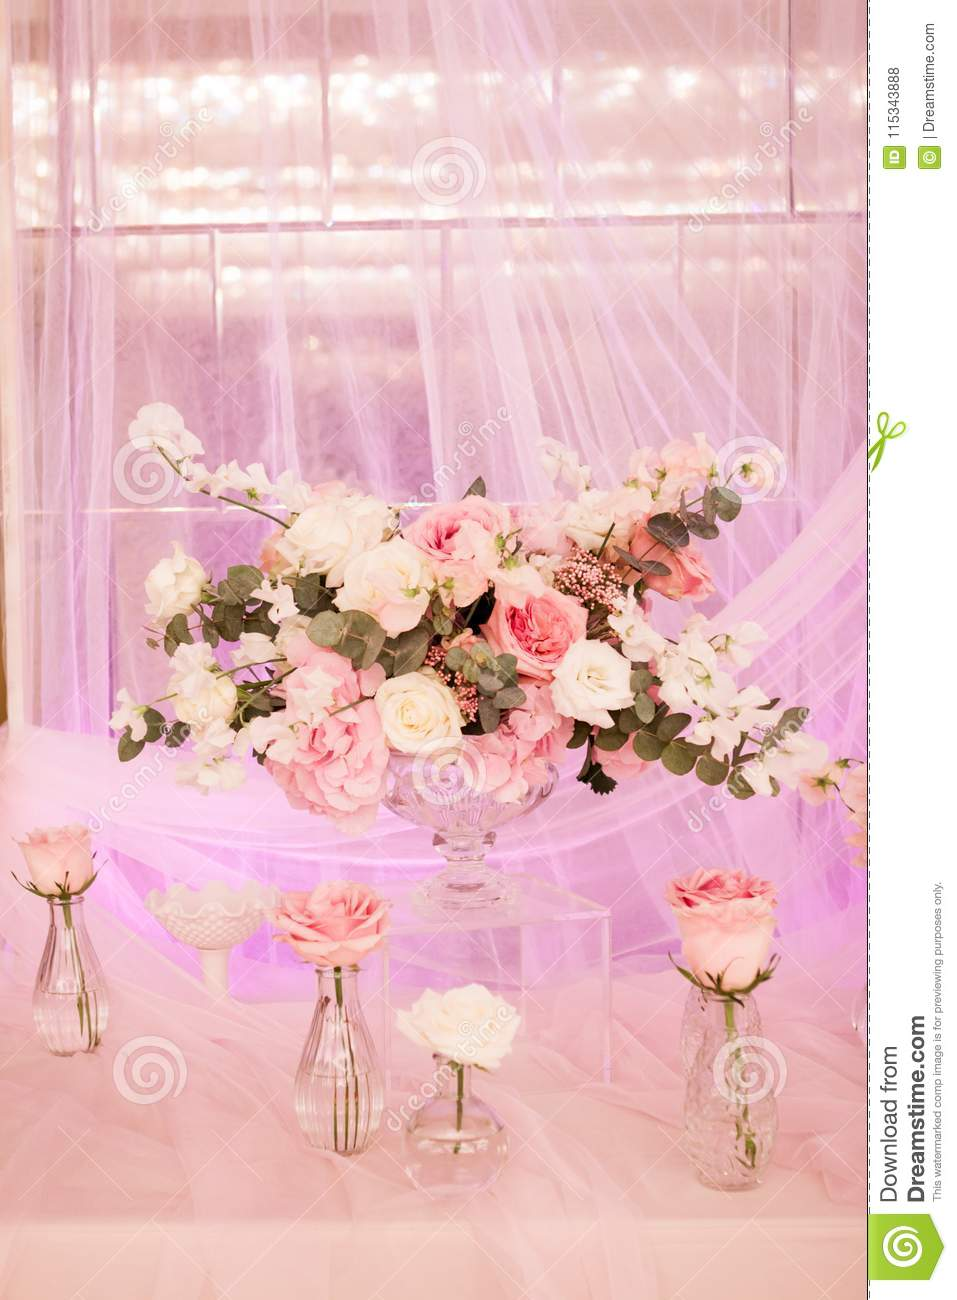 Beautiful decor with fabric and flowers a large vase with white and download beautiful decor with fabric and flowers a large vase with white and pink flowers izmirmasajfo